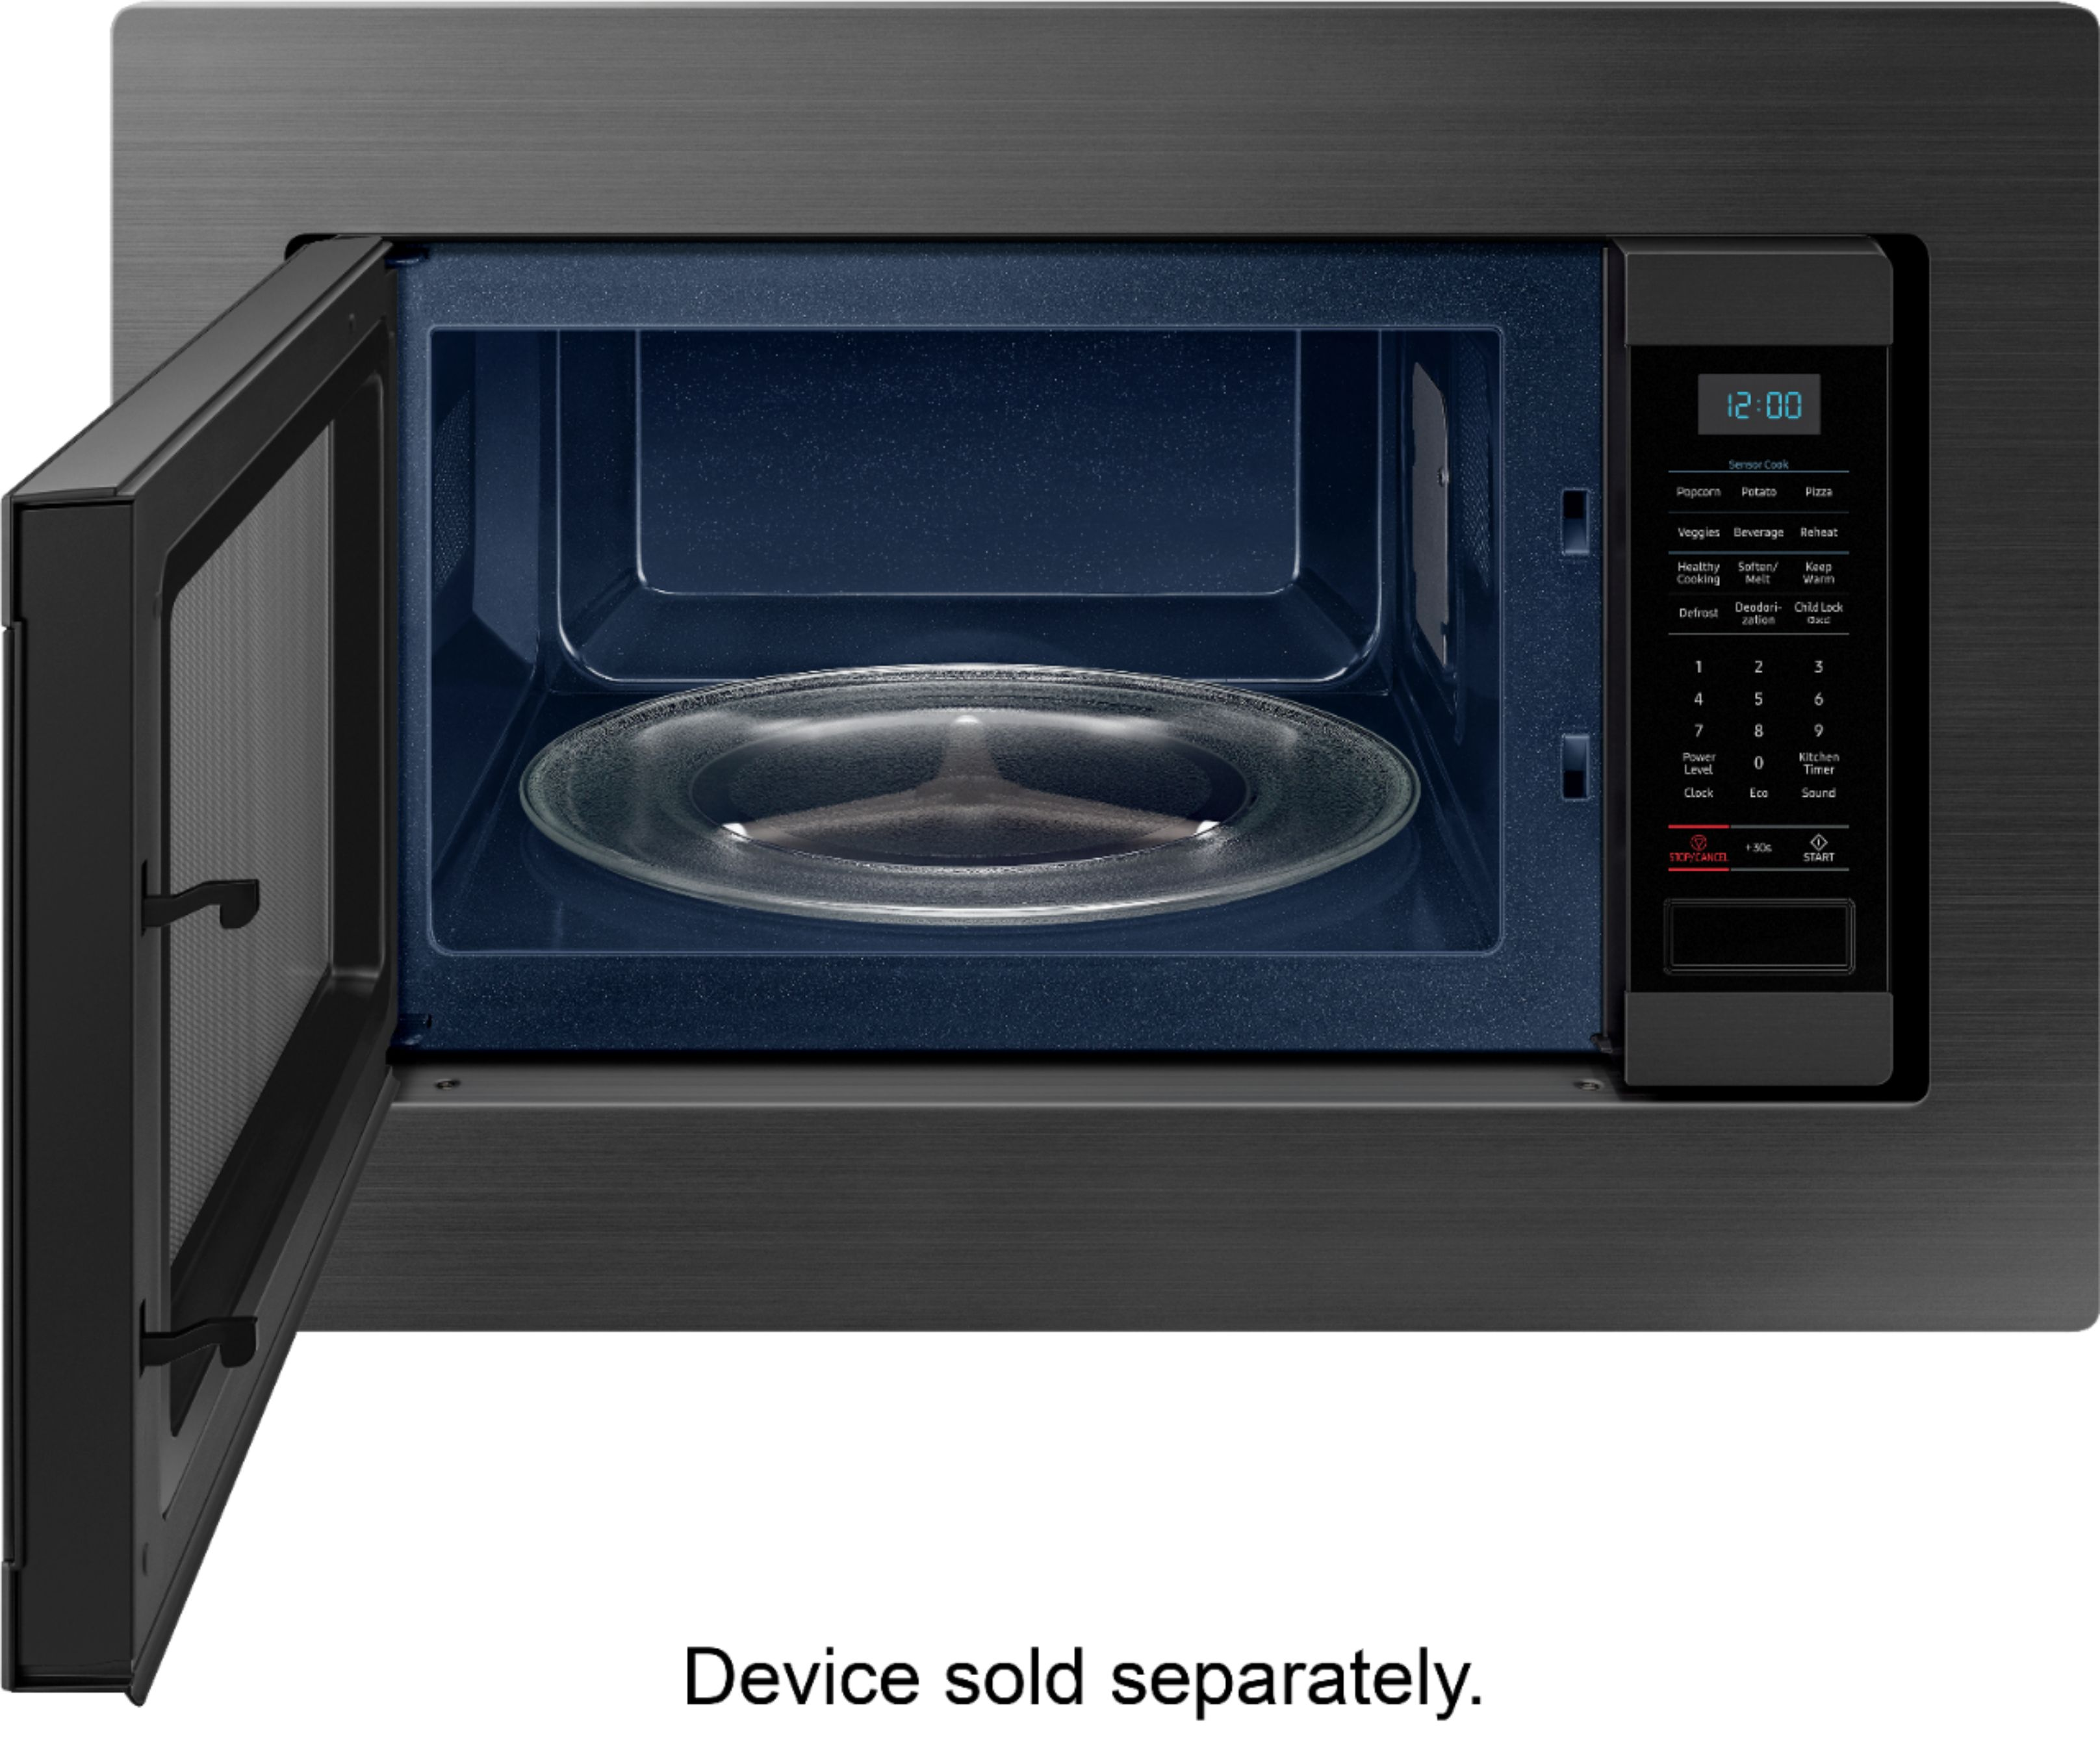 samsung 1 9 cu ft countertop microwave for built in applications with sensor cook fingerprint resistant black stainless steel